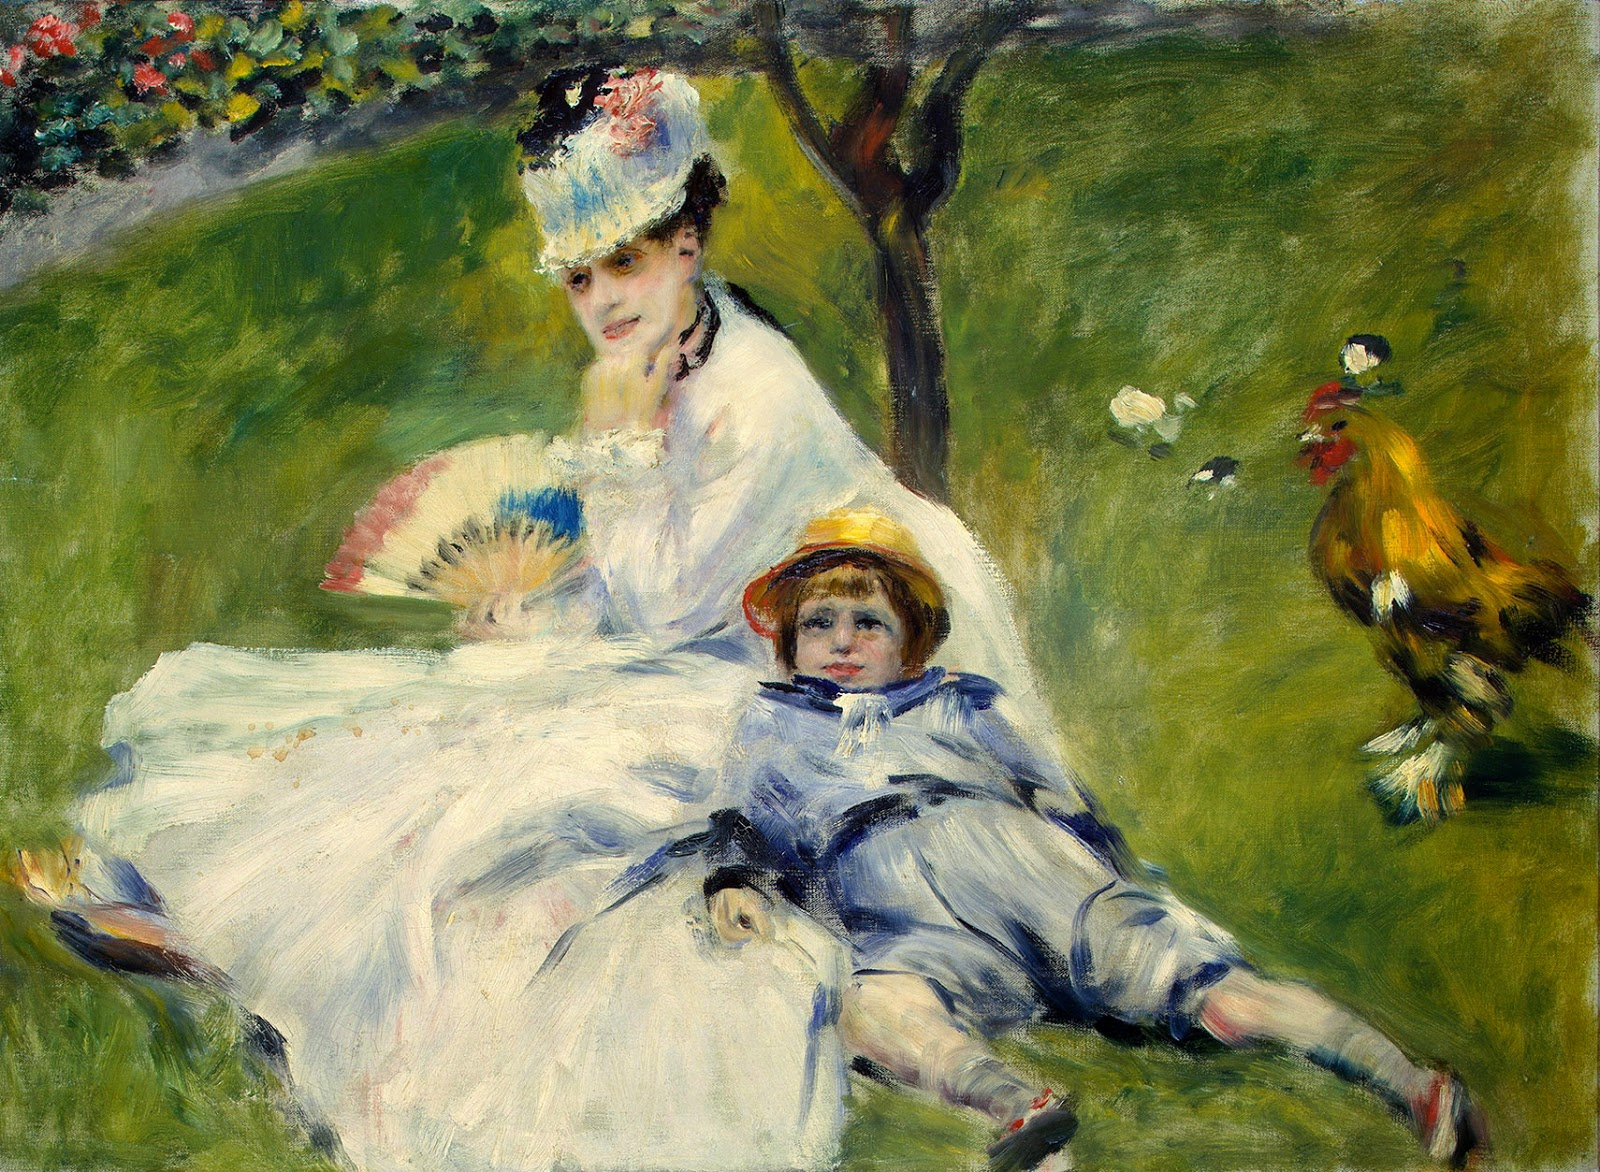 Pierre-Auguste Renoir, Madame Manet y su hijo (1874), National Gallery of Art, Washington